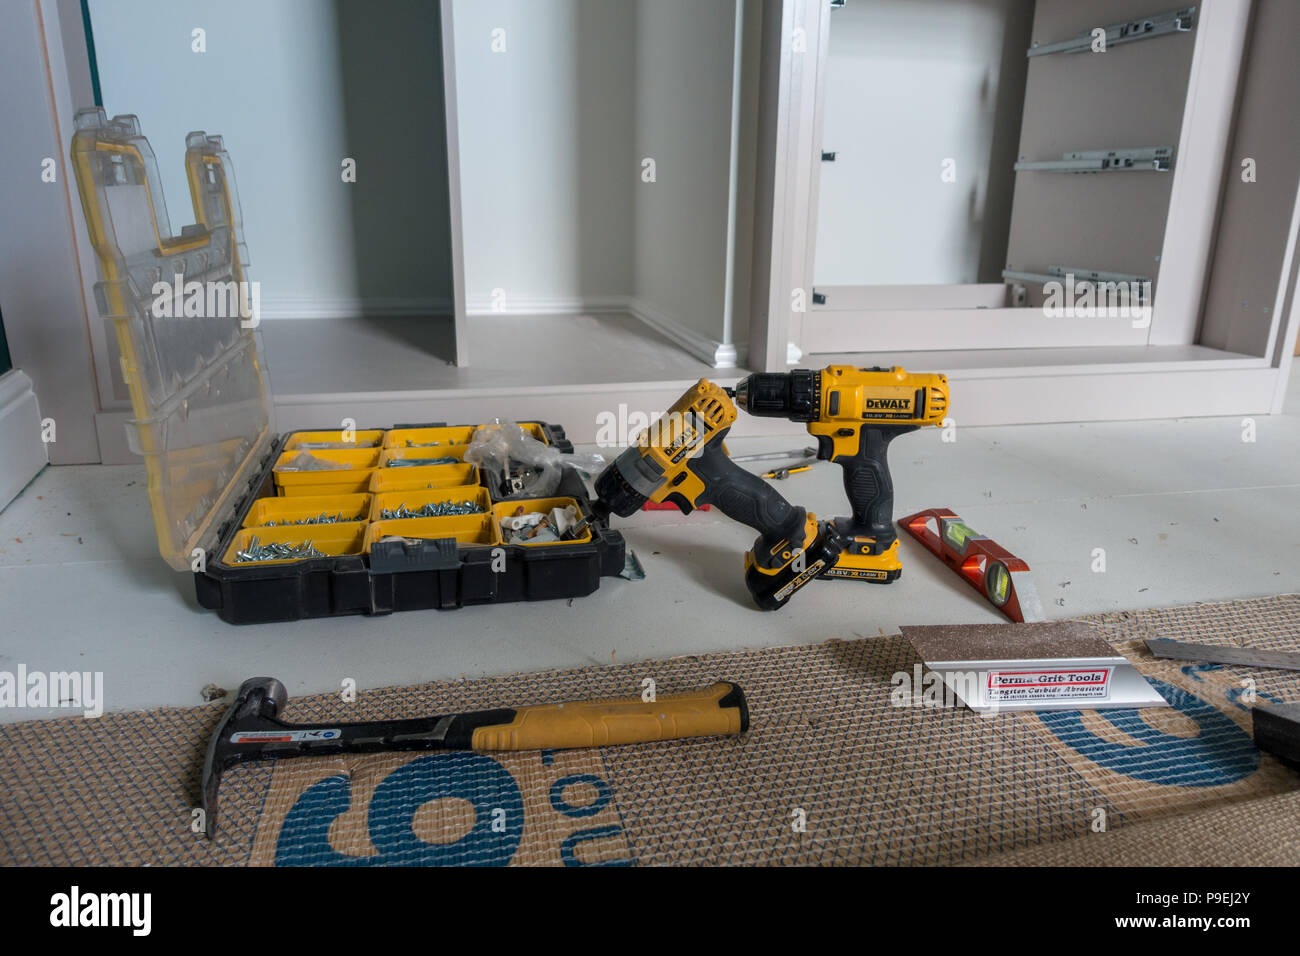 Home improvement tools on the floor next to a partially finished fitted wardrobe - Stock Image